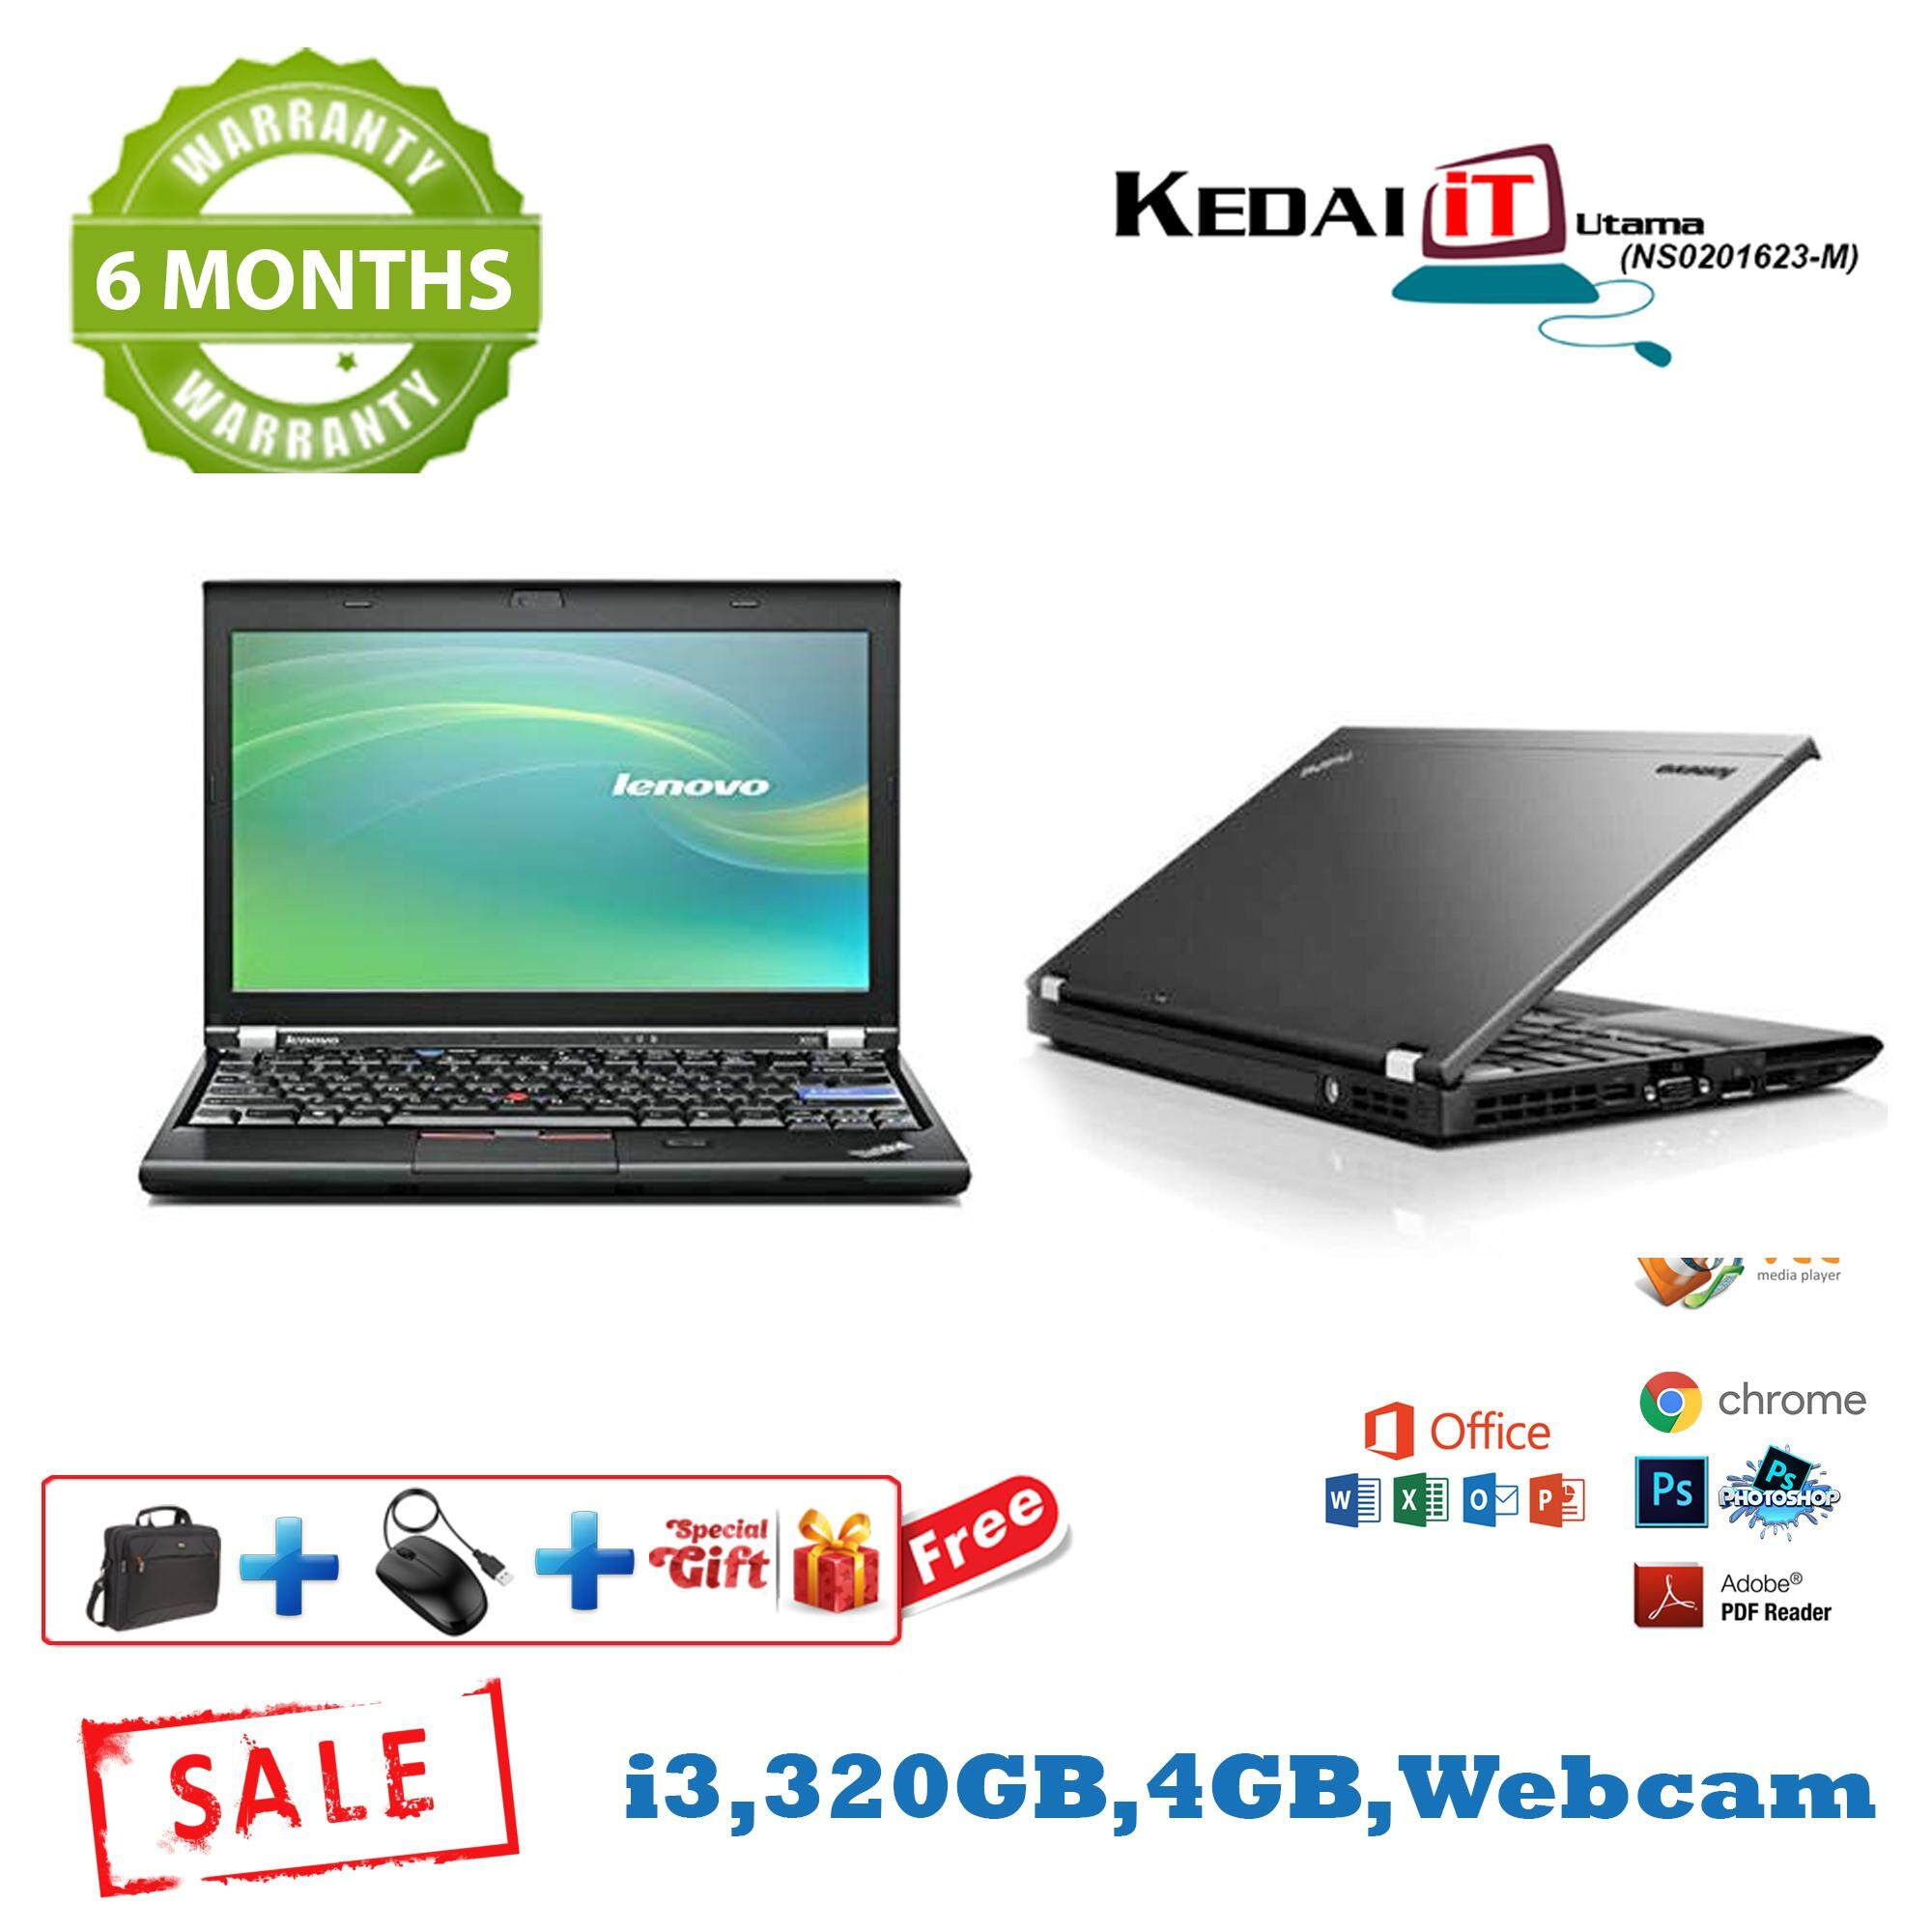 Lenovo x220i i3 2nd Gen Laptop 6 Months Warranty , (Factory Refurbished) Malaysia